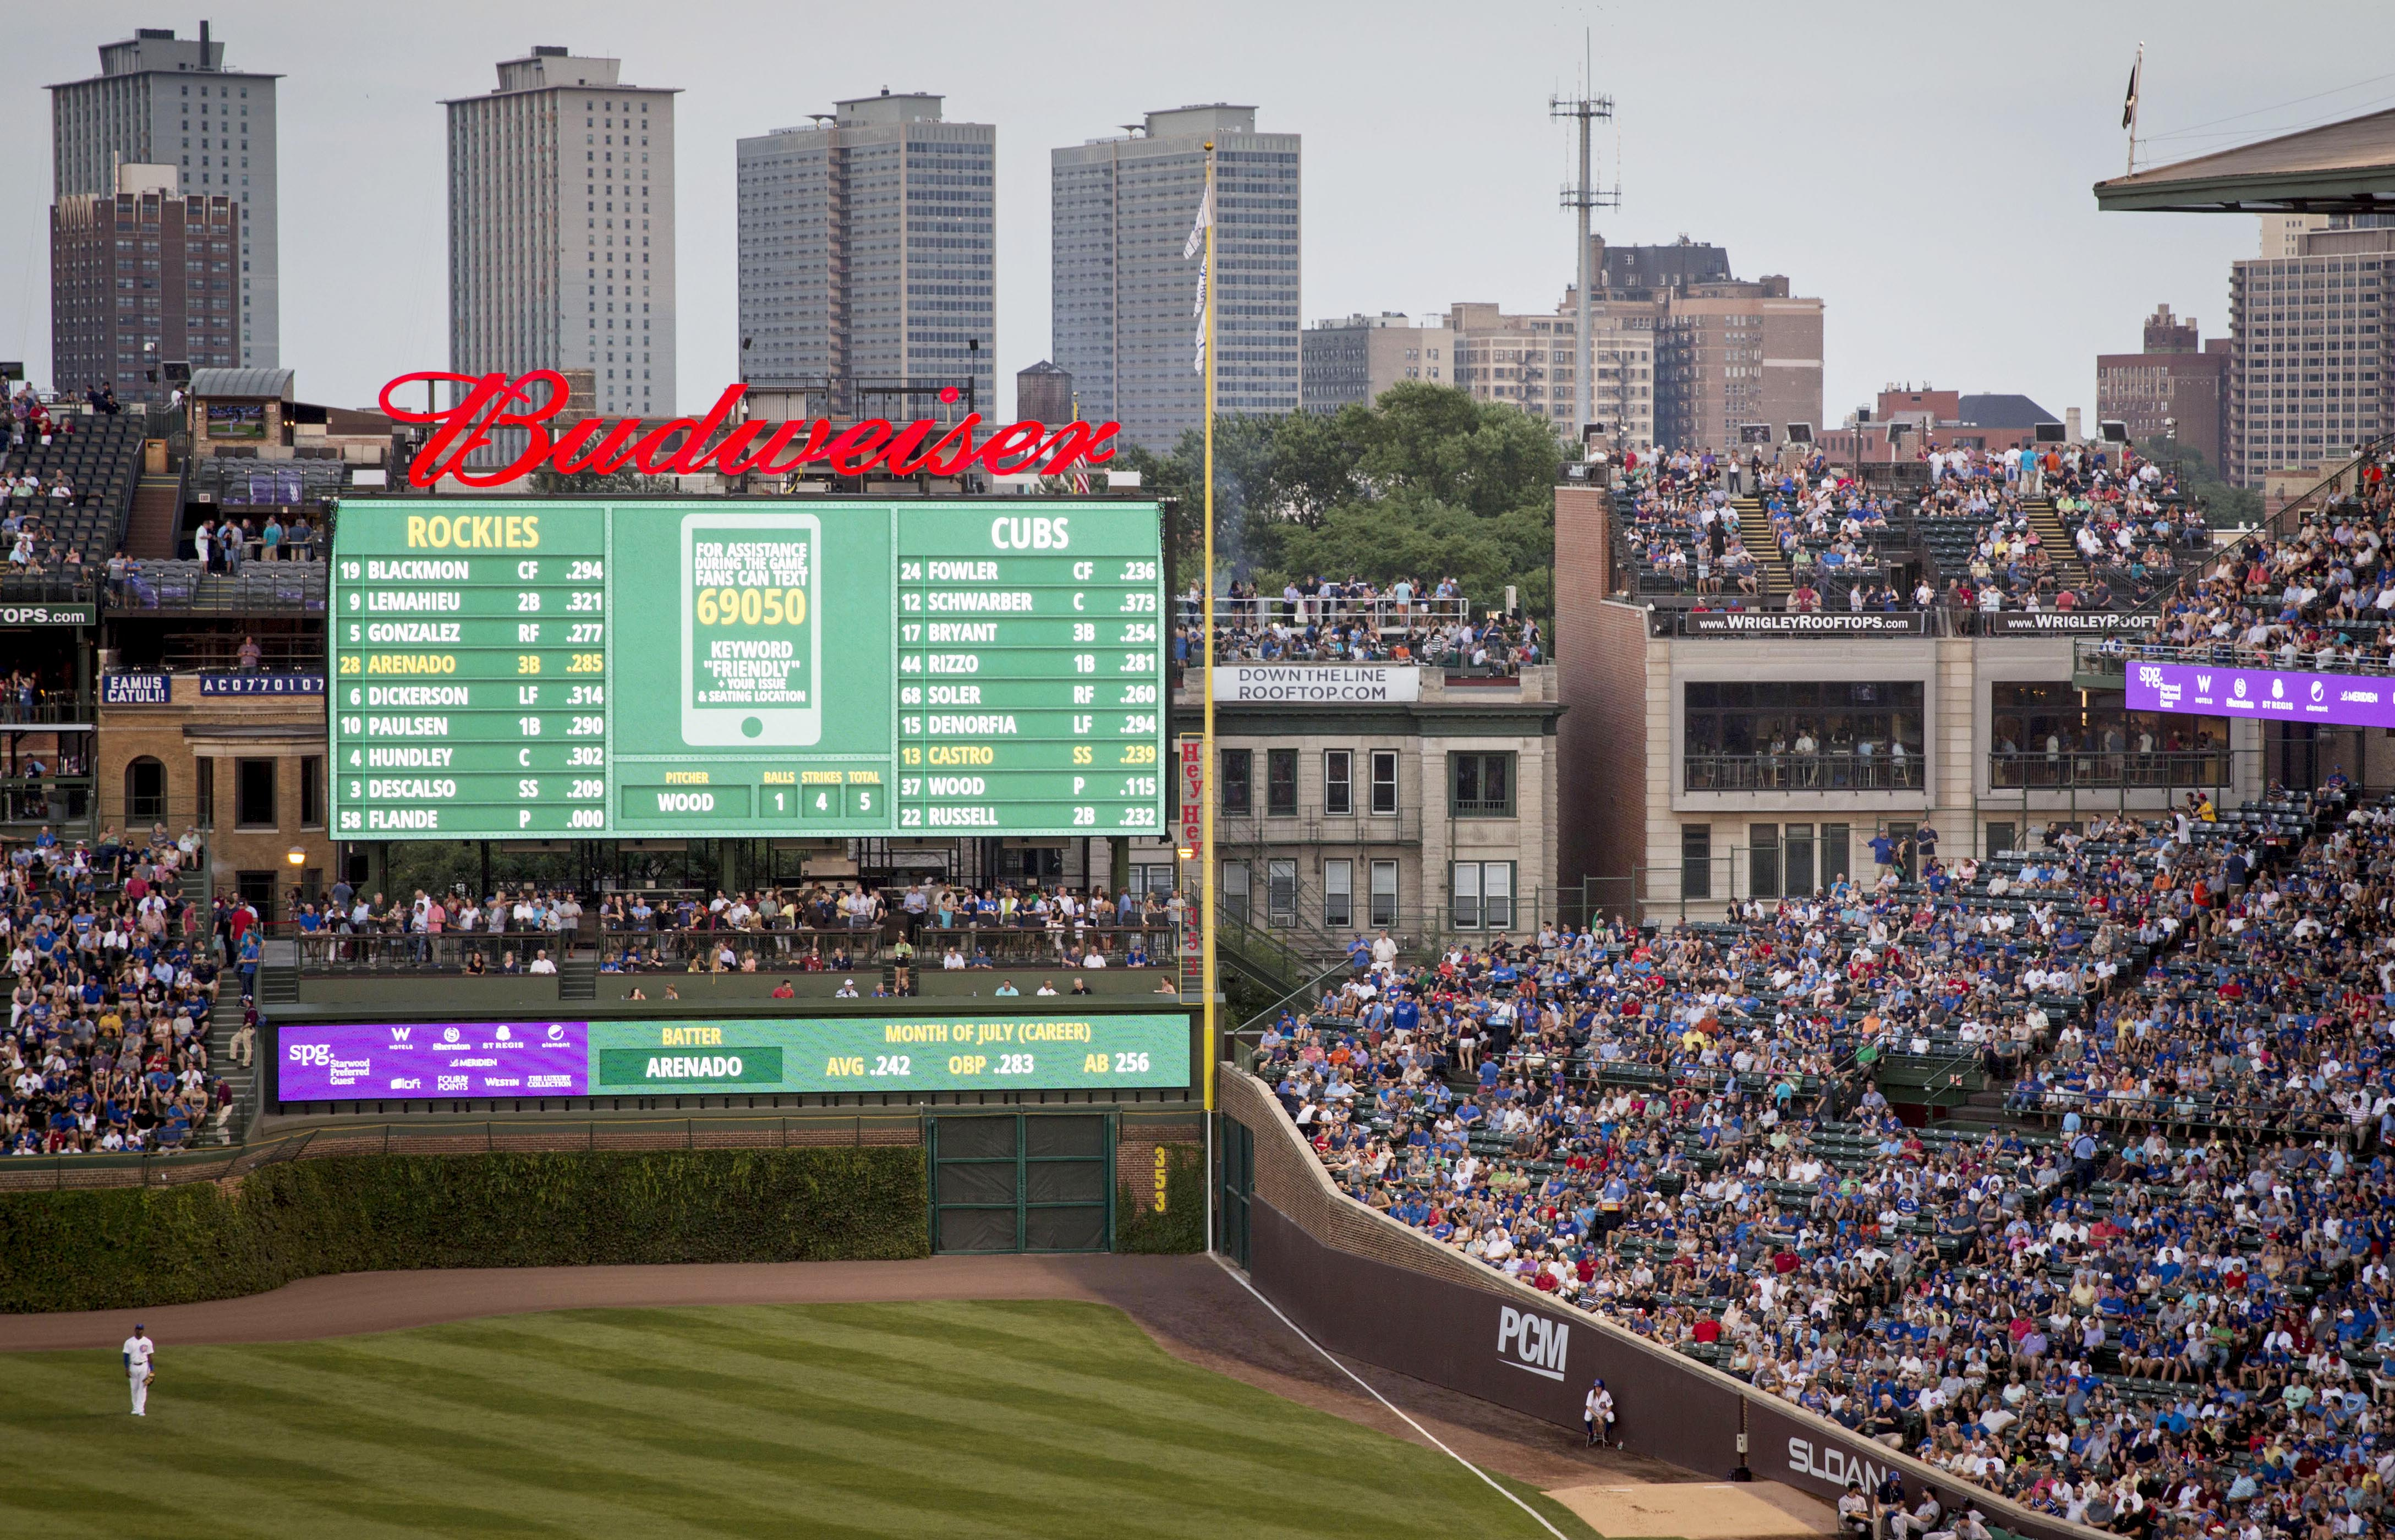 In this July 28, 2015 photo, fans at a Wrigley Rooftops' building and other rooftop venues down the right-field line outside Wrigley Field watch players during the second inning of a baseball game between the Colorado Rockies and Chicago Cubs in Chicago